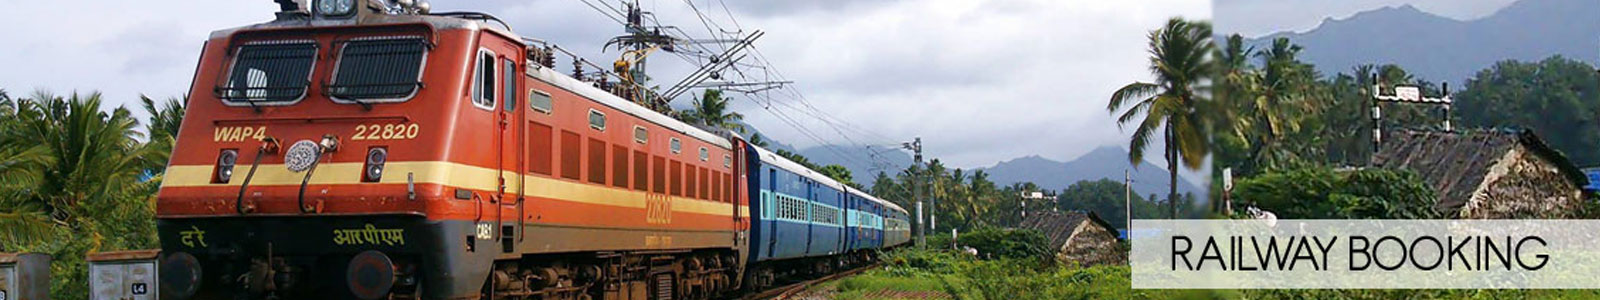 rail ticketing services in bareilly, uttar pradesh, india